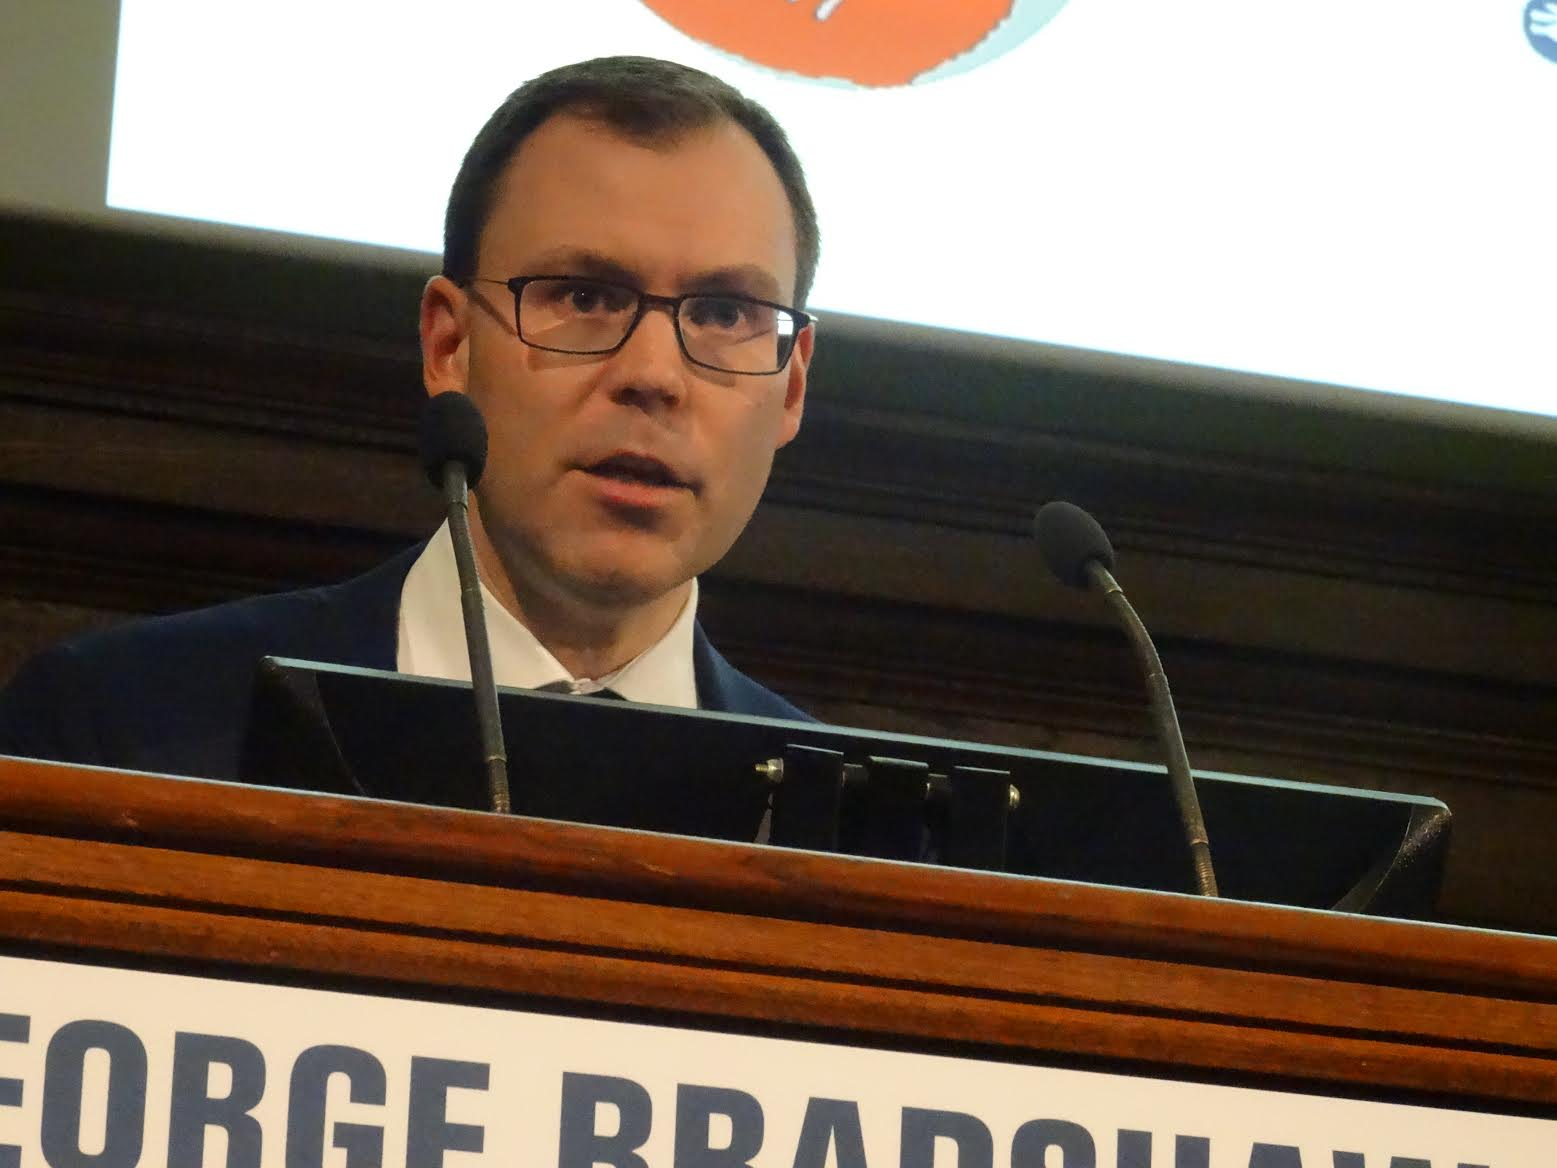 Chris Burchell's 'George Bradshaw' address: The Rail industry needs to change over the next 20 years